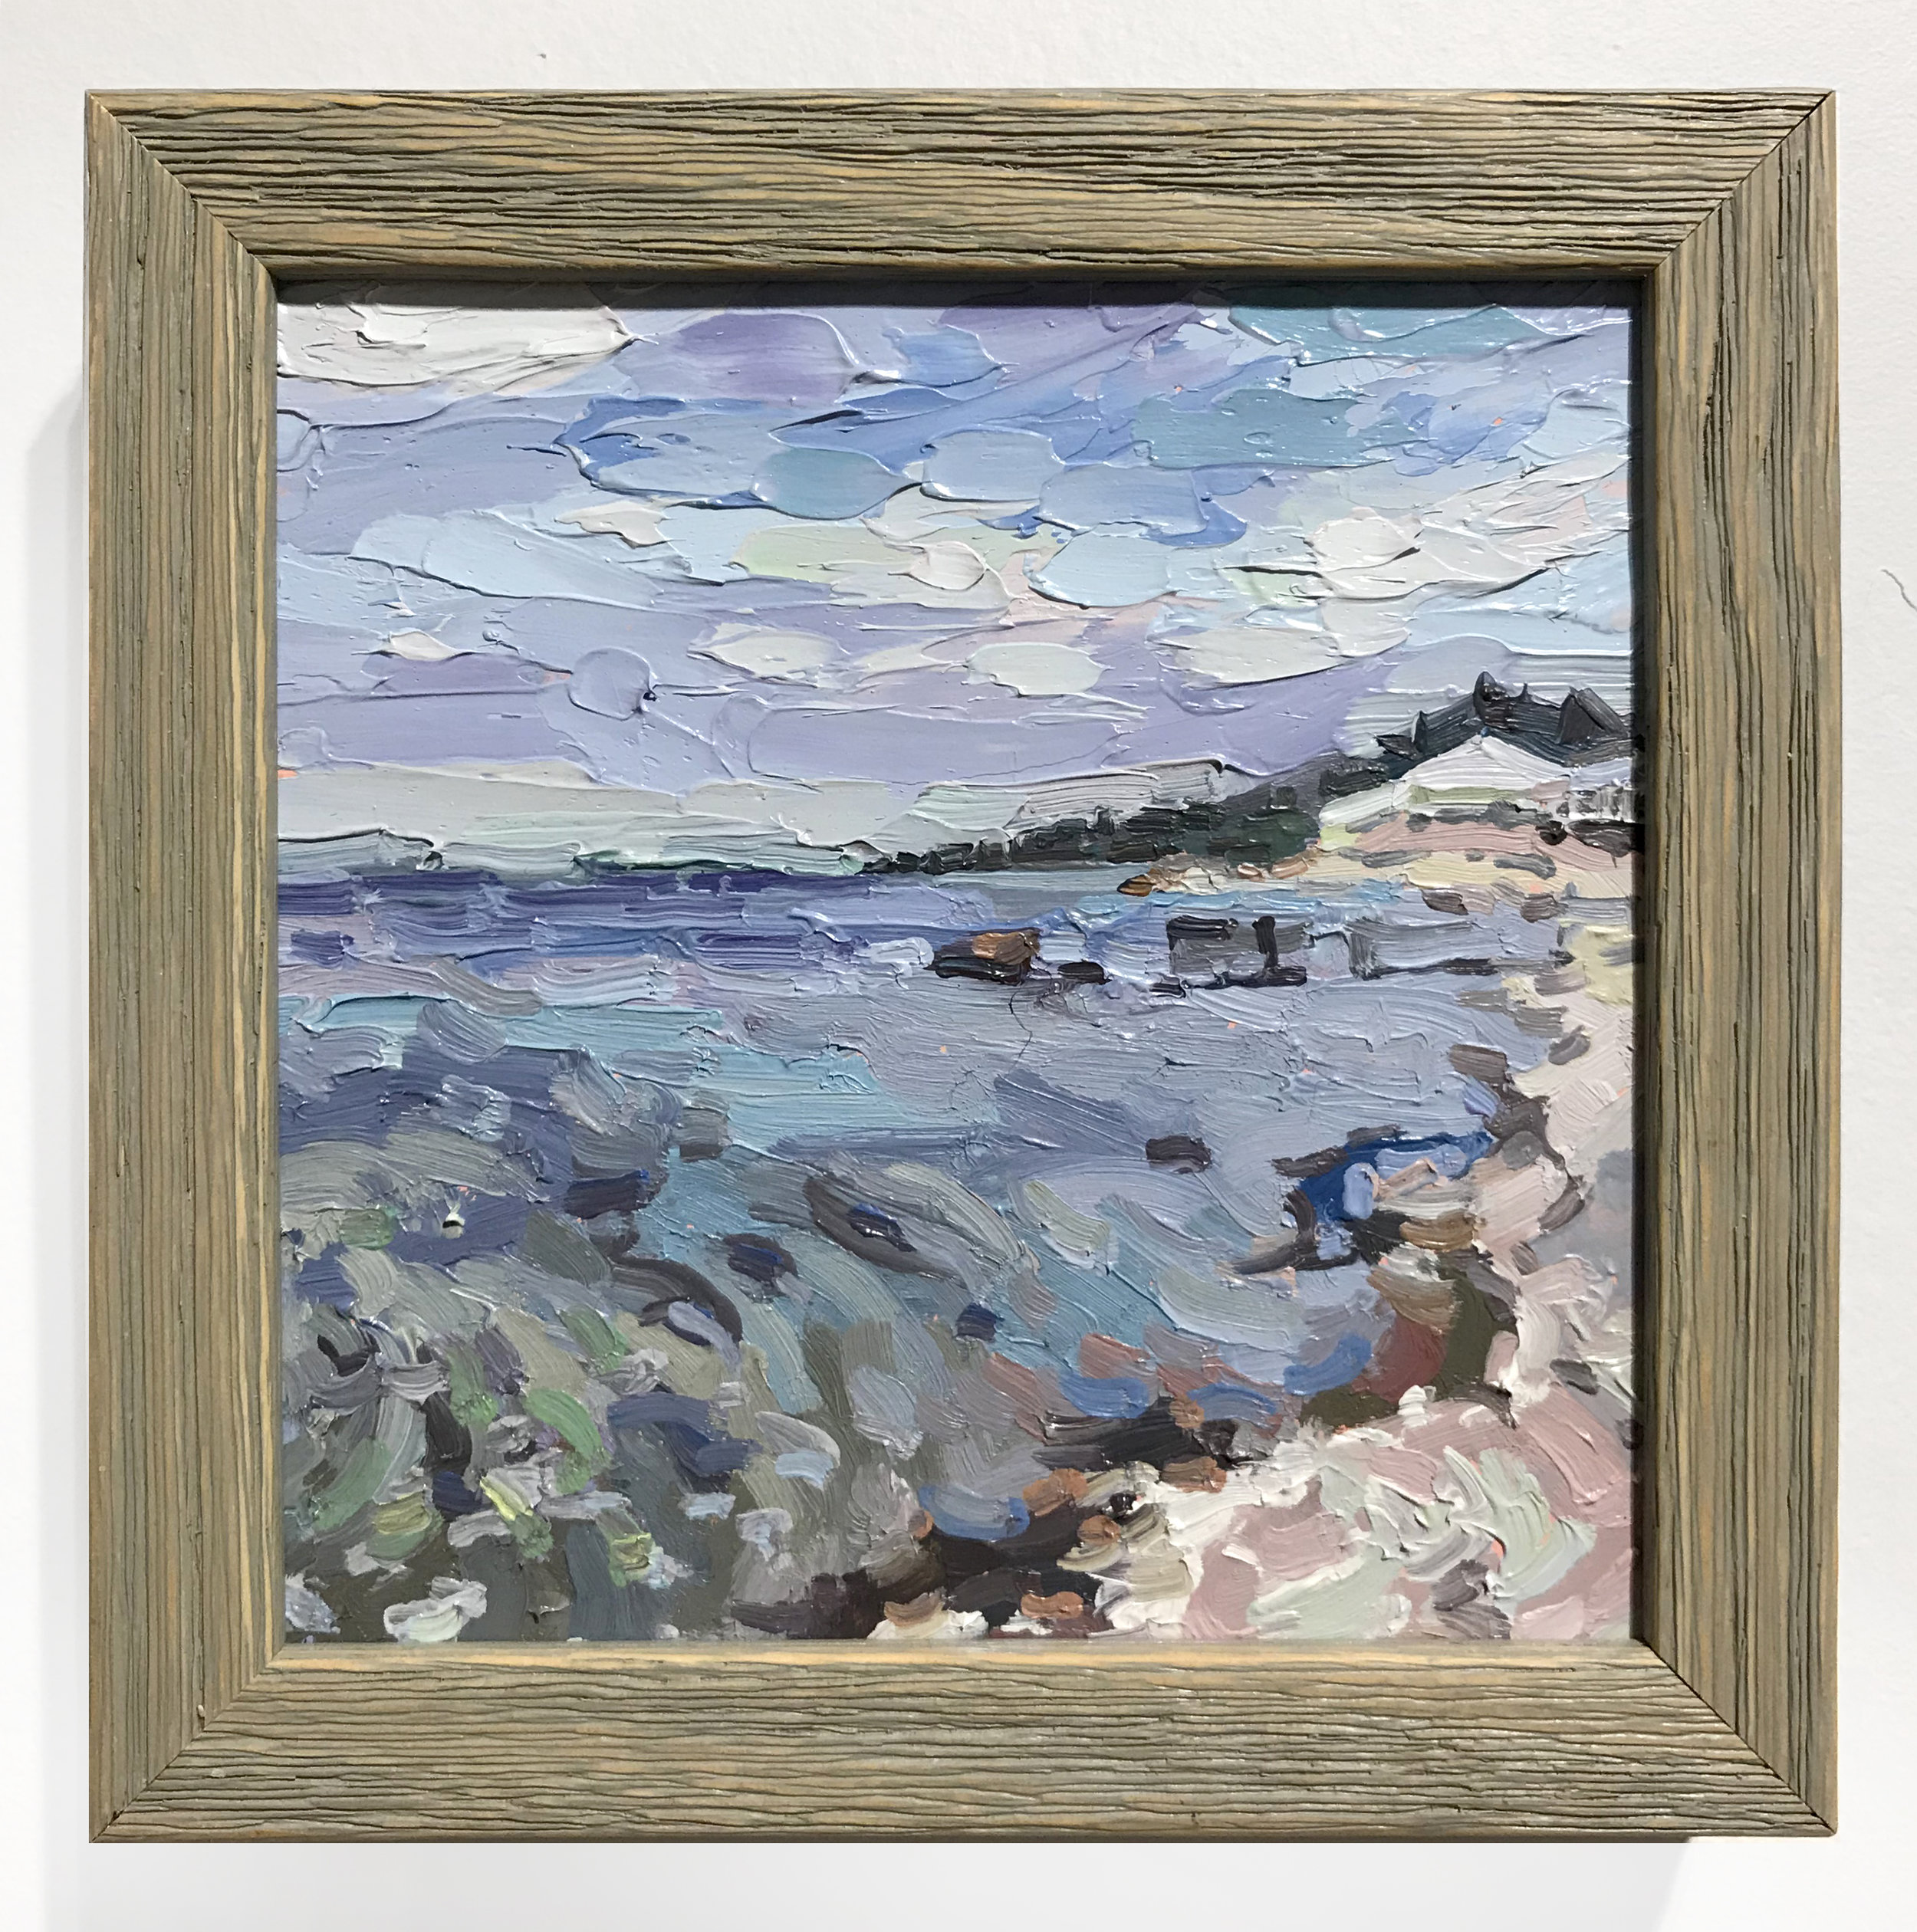 - Amy WorthFrom the Soundview2018Oil on board in artist's frame6 x 6 inches